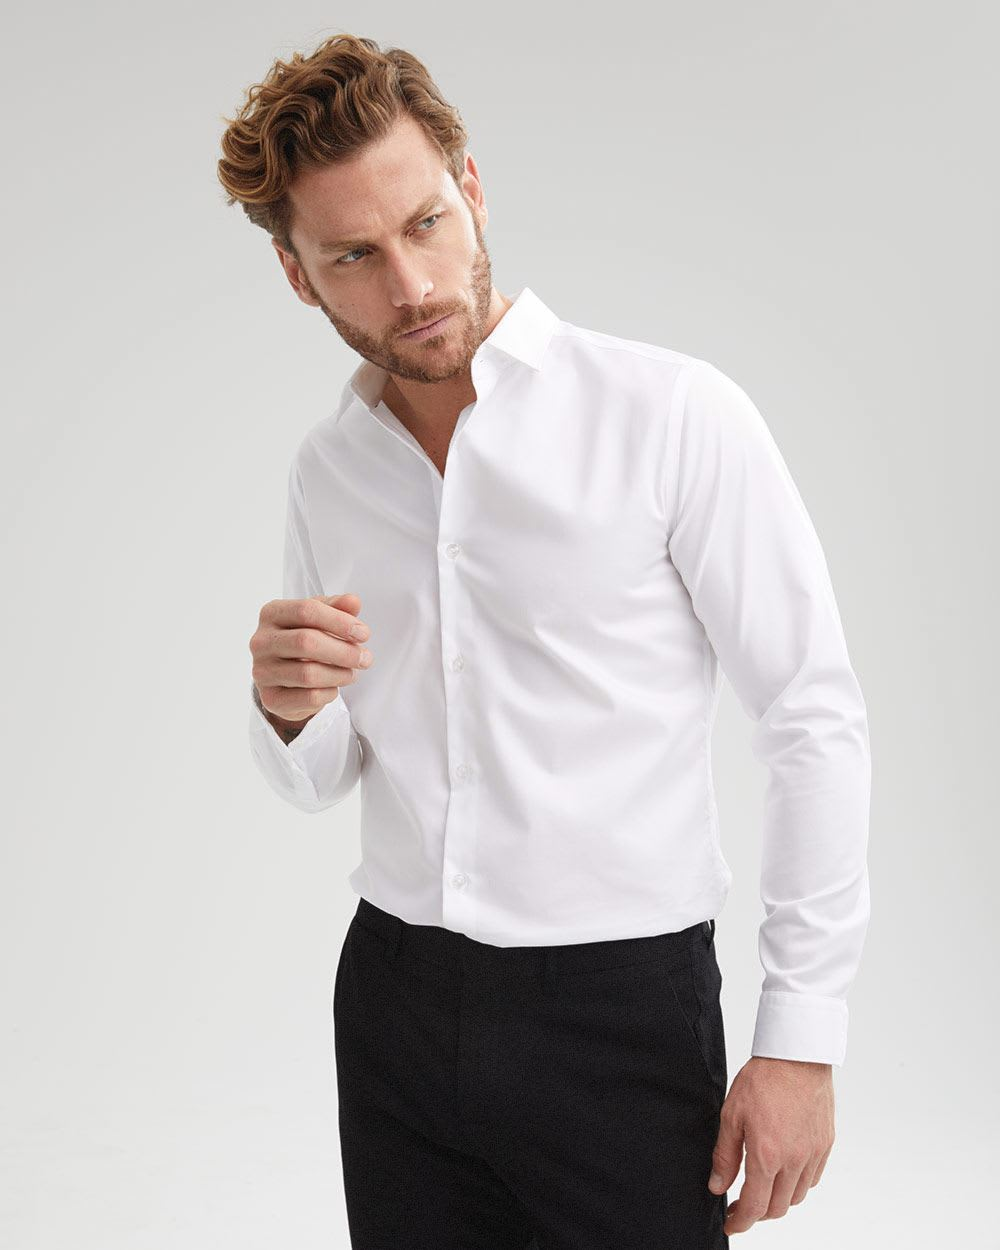 Tailored Fit solid Dress Shirt - Tall